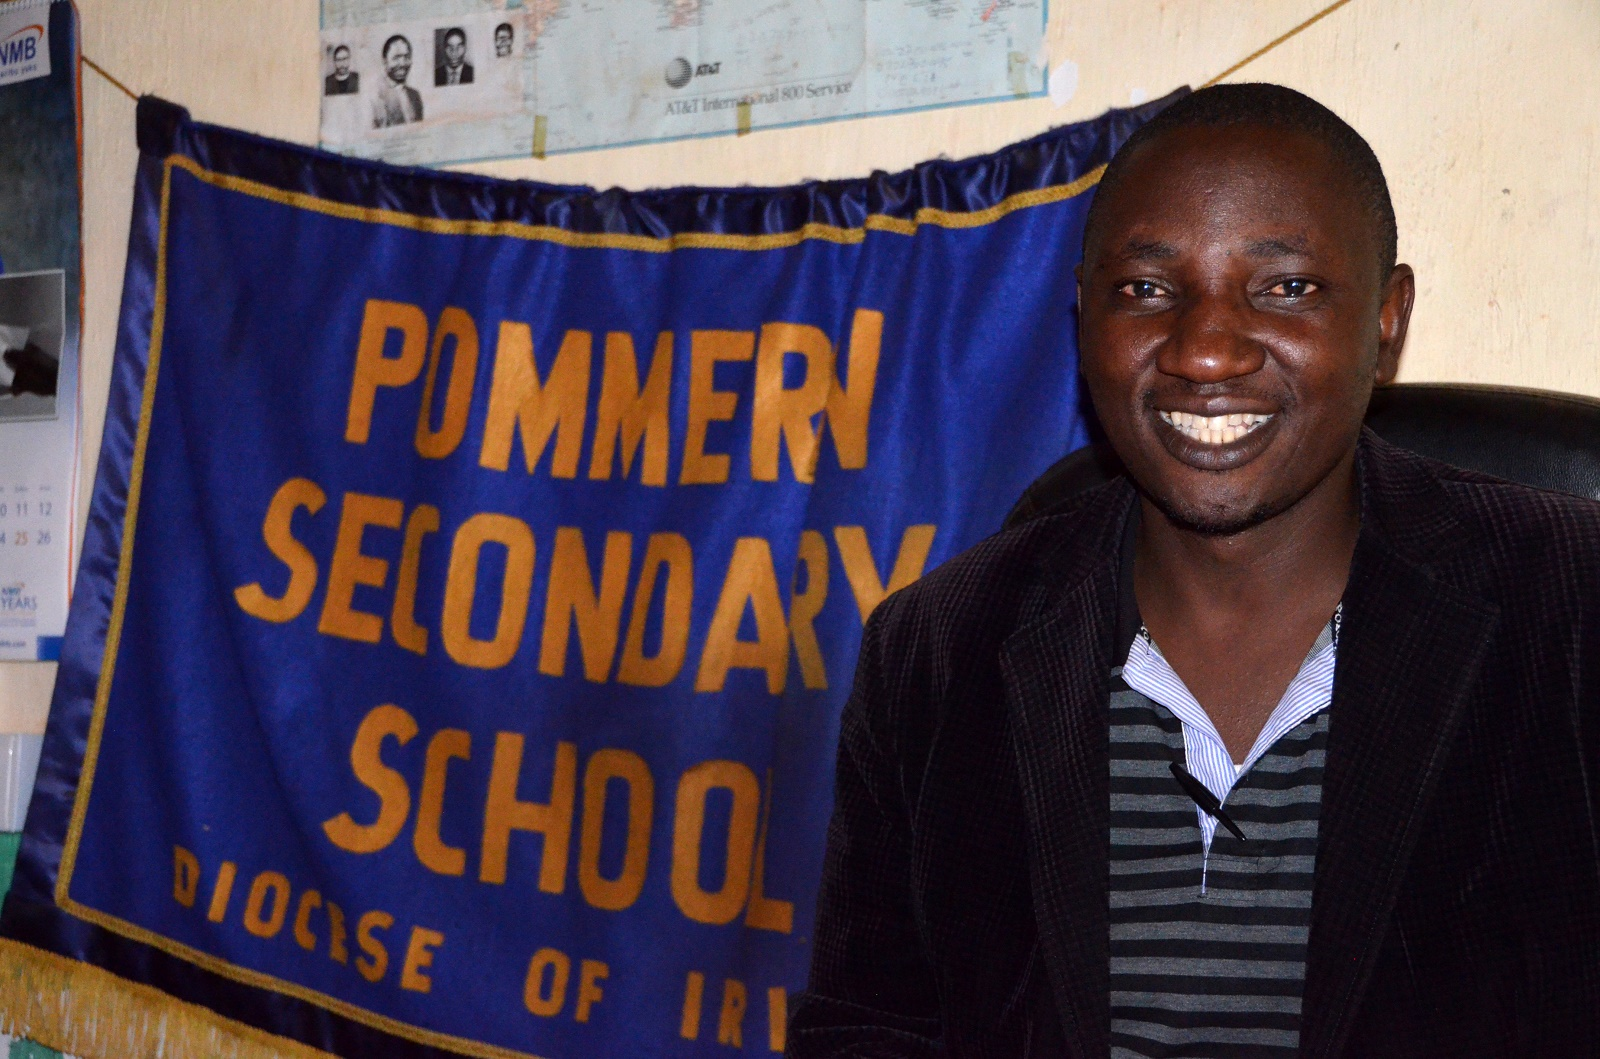 Mr. Shadrack Nyaulingo, Headmaster of the Pomerini Secondary School